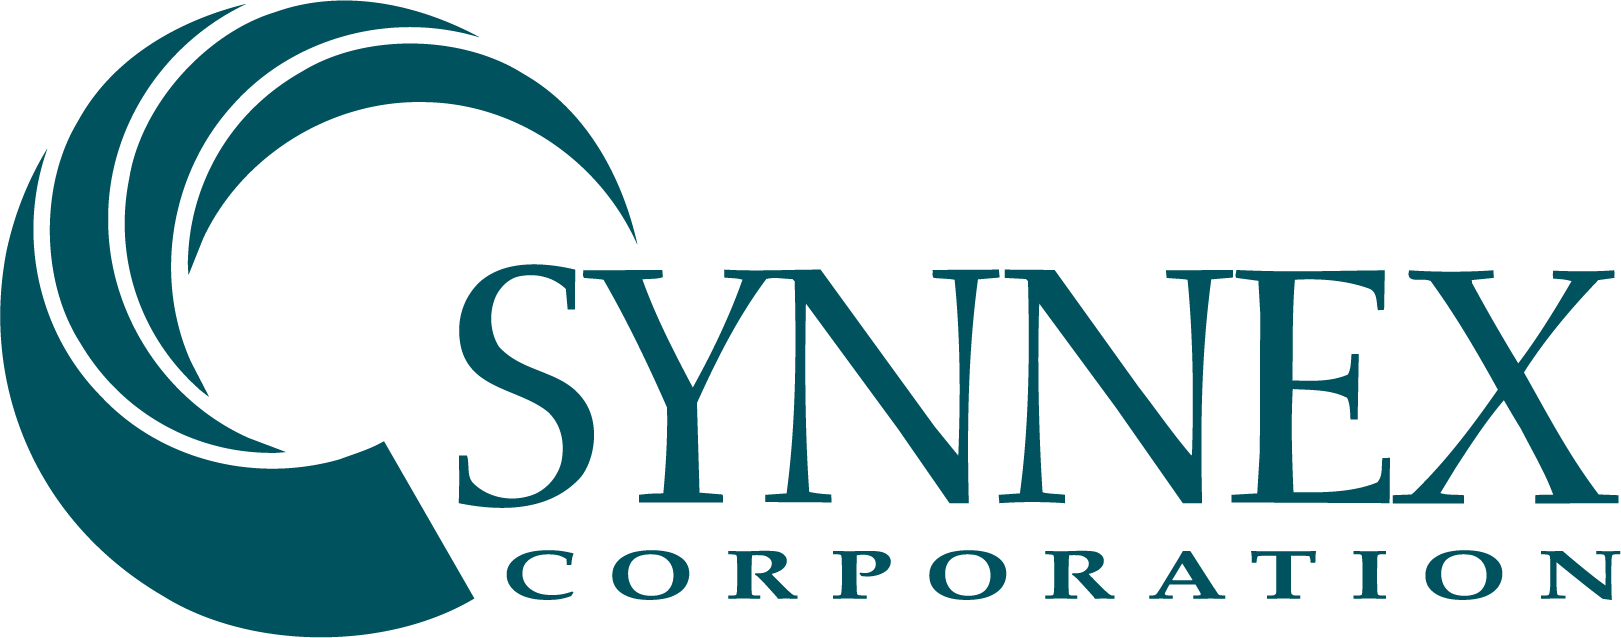 synnex-pos.png